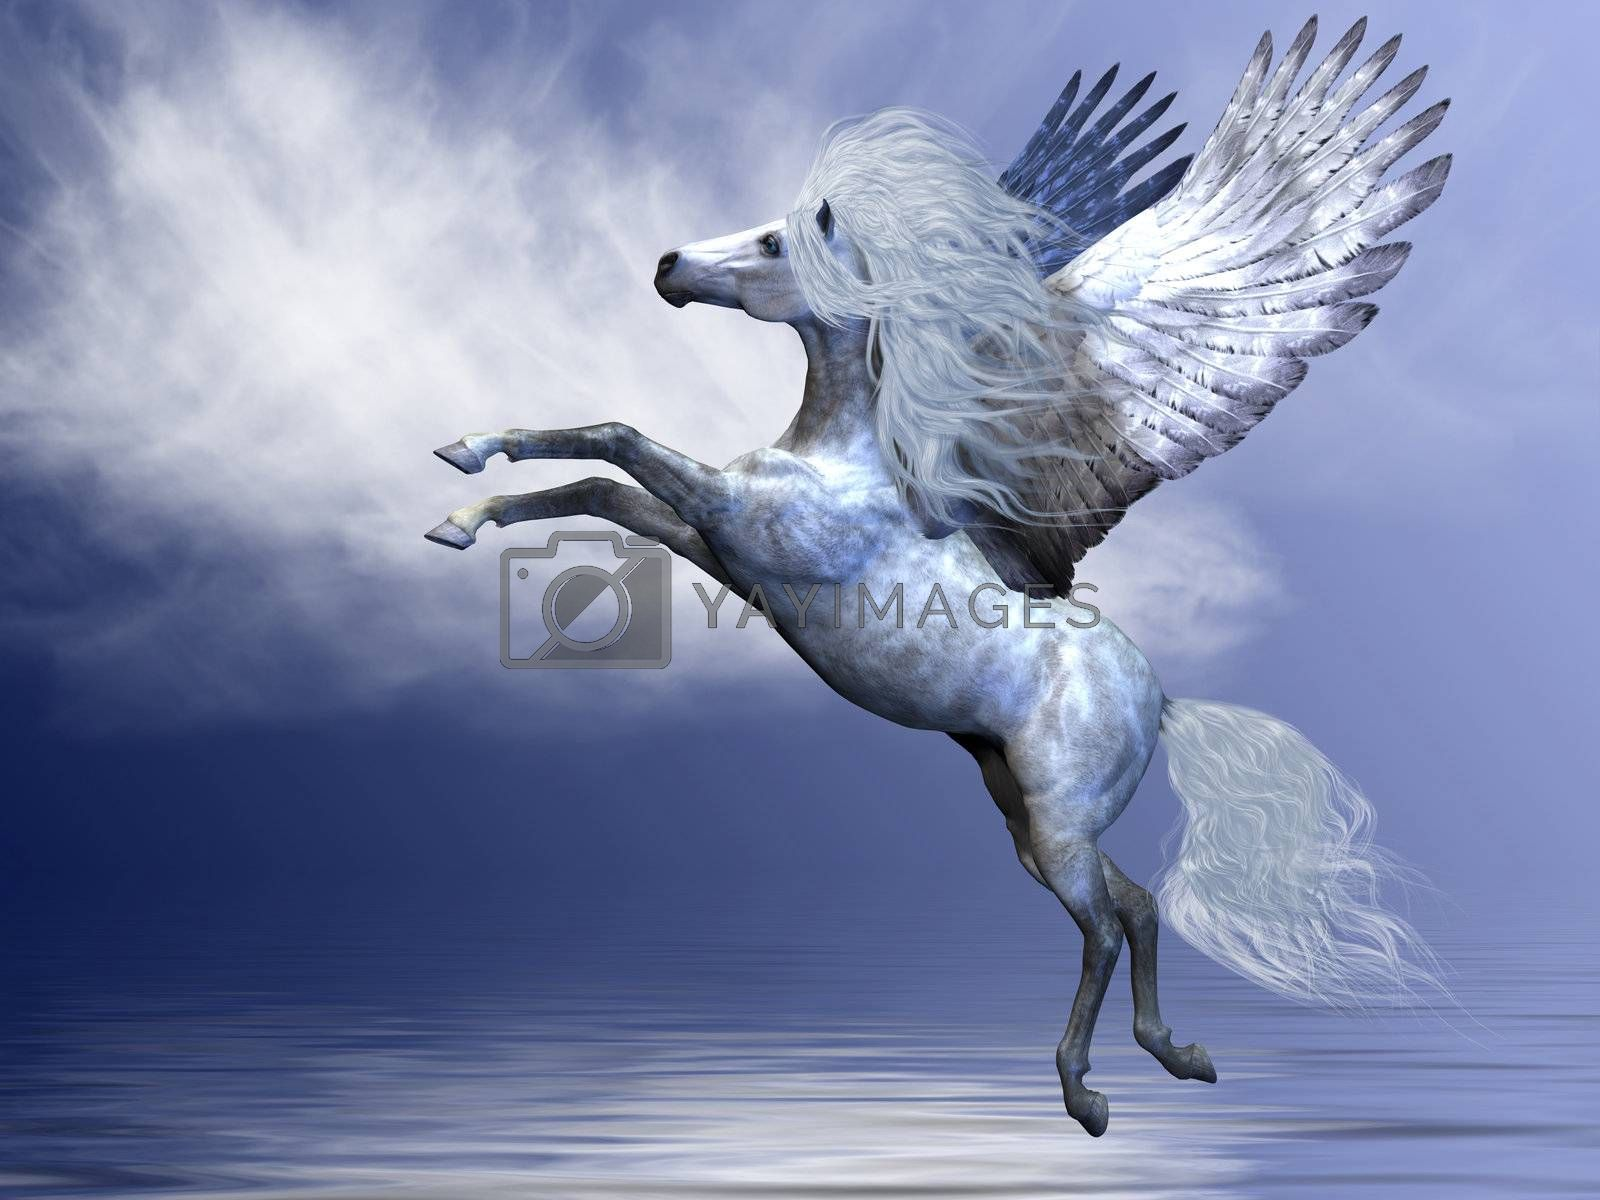 White Pegasus spreads his magnificent wings in flight over an ocean.